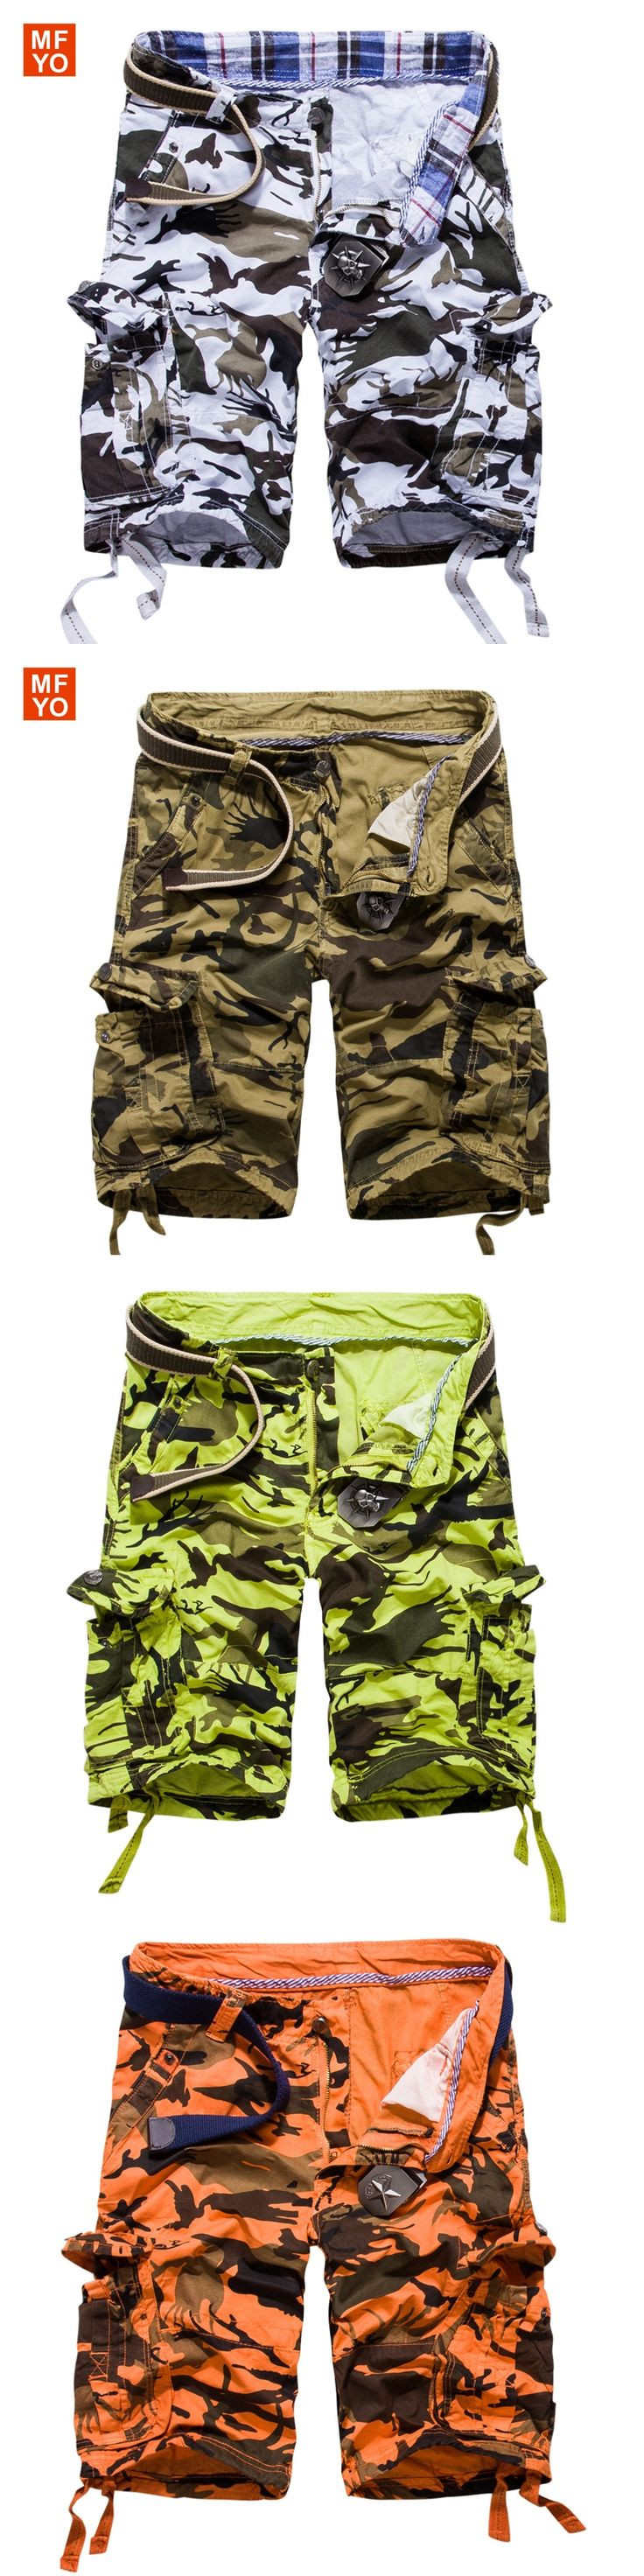 2016 Military Male Board Shorts Summer Men's Camouflage Army Cargo Shorts Workout Shorts Homme Casual Bermuda Trousers plus size